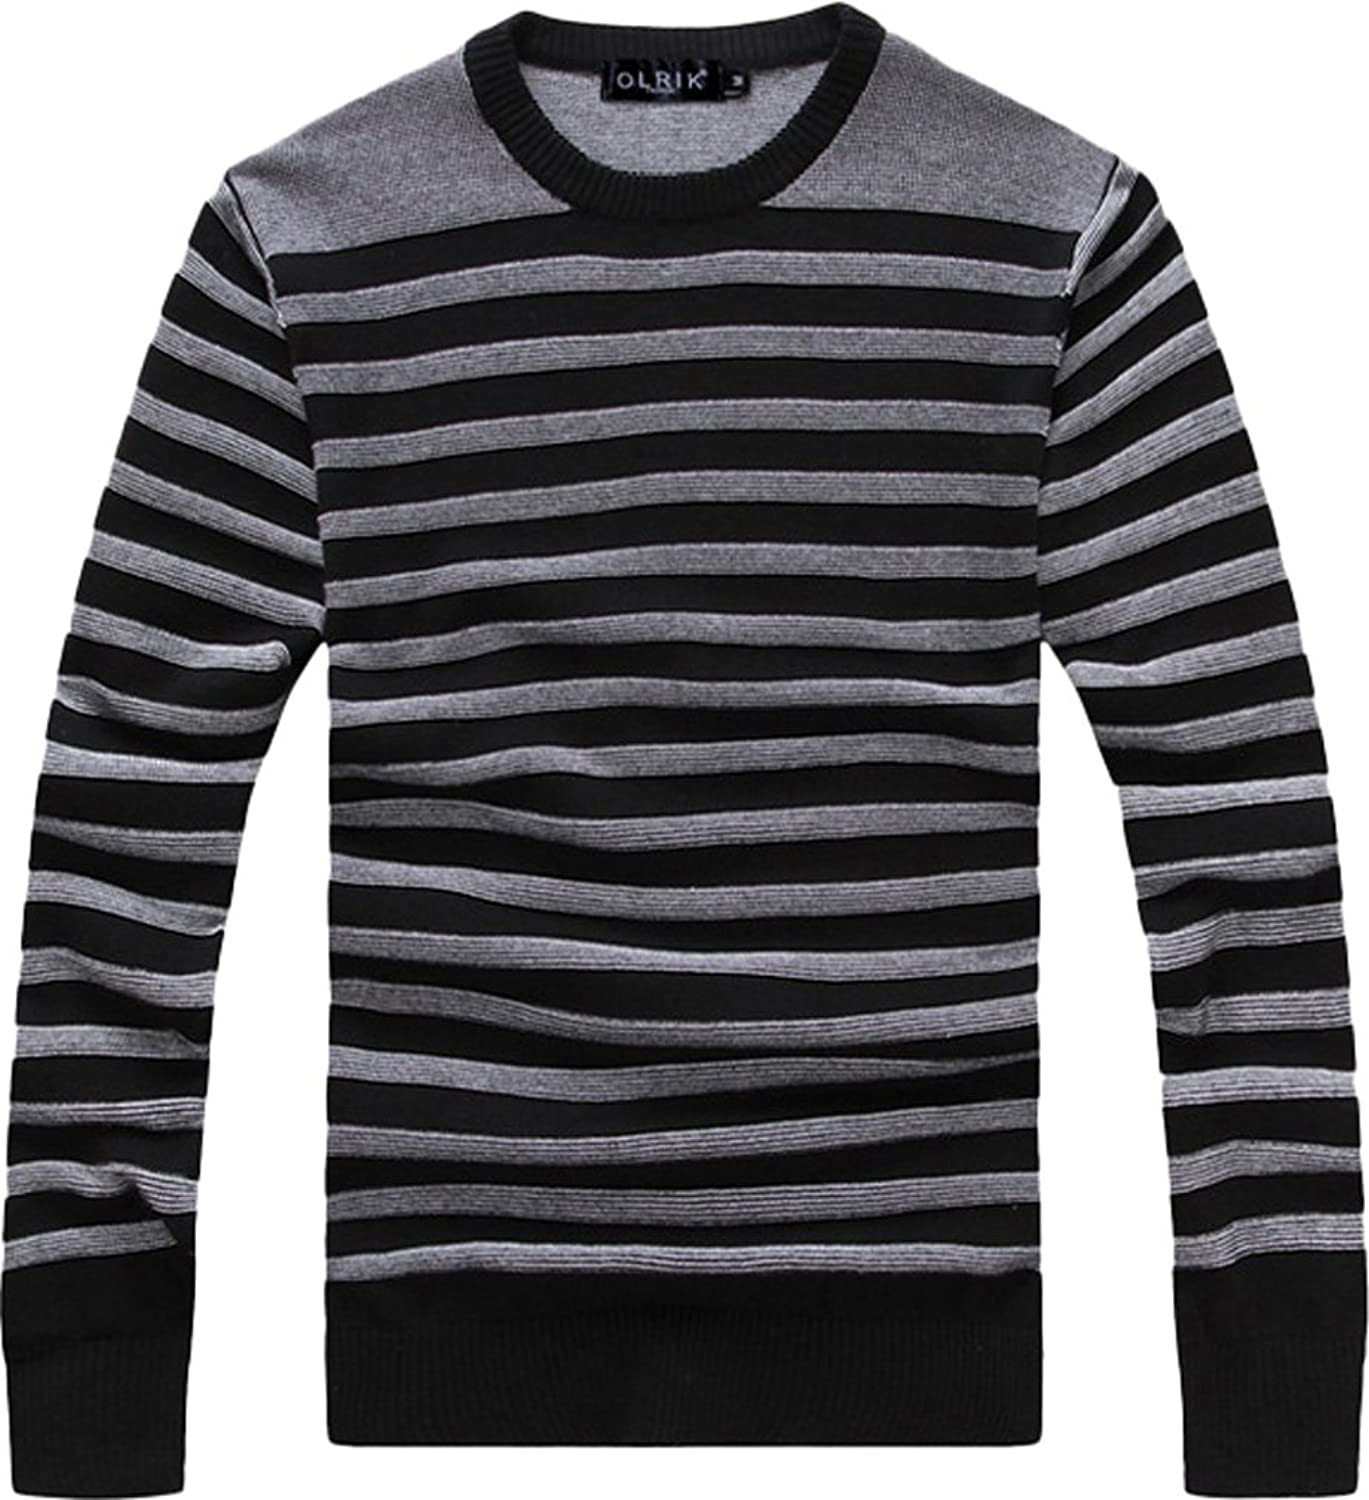 ADS Men's Casual Cotton Broken Stripe Crew Neck Pullover Sweater Asia Size